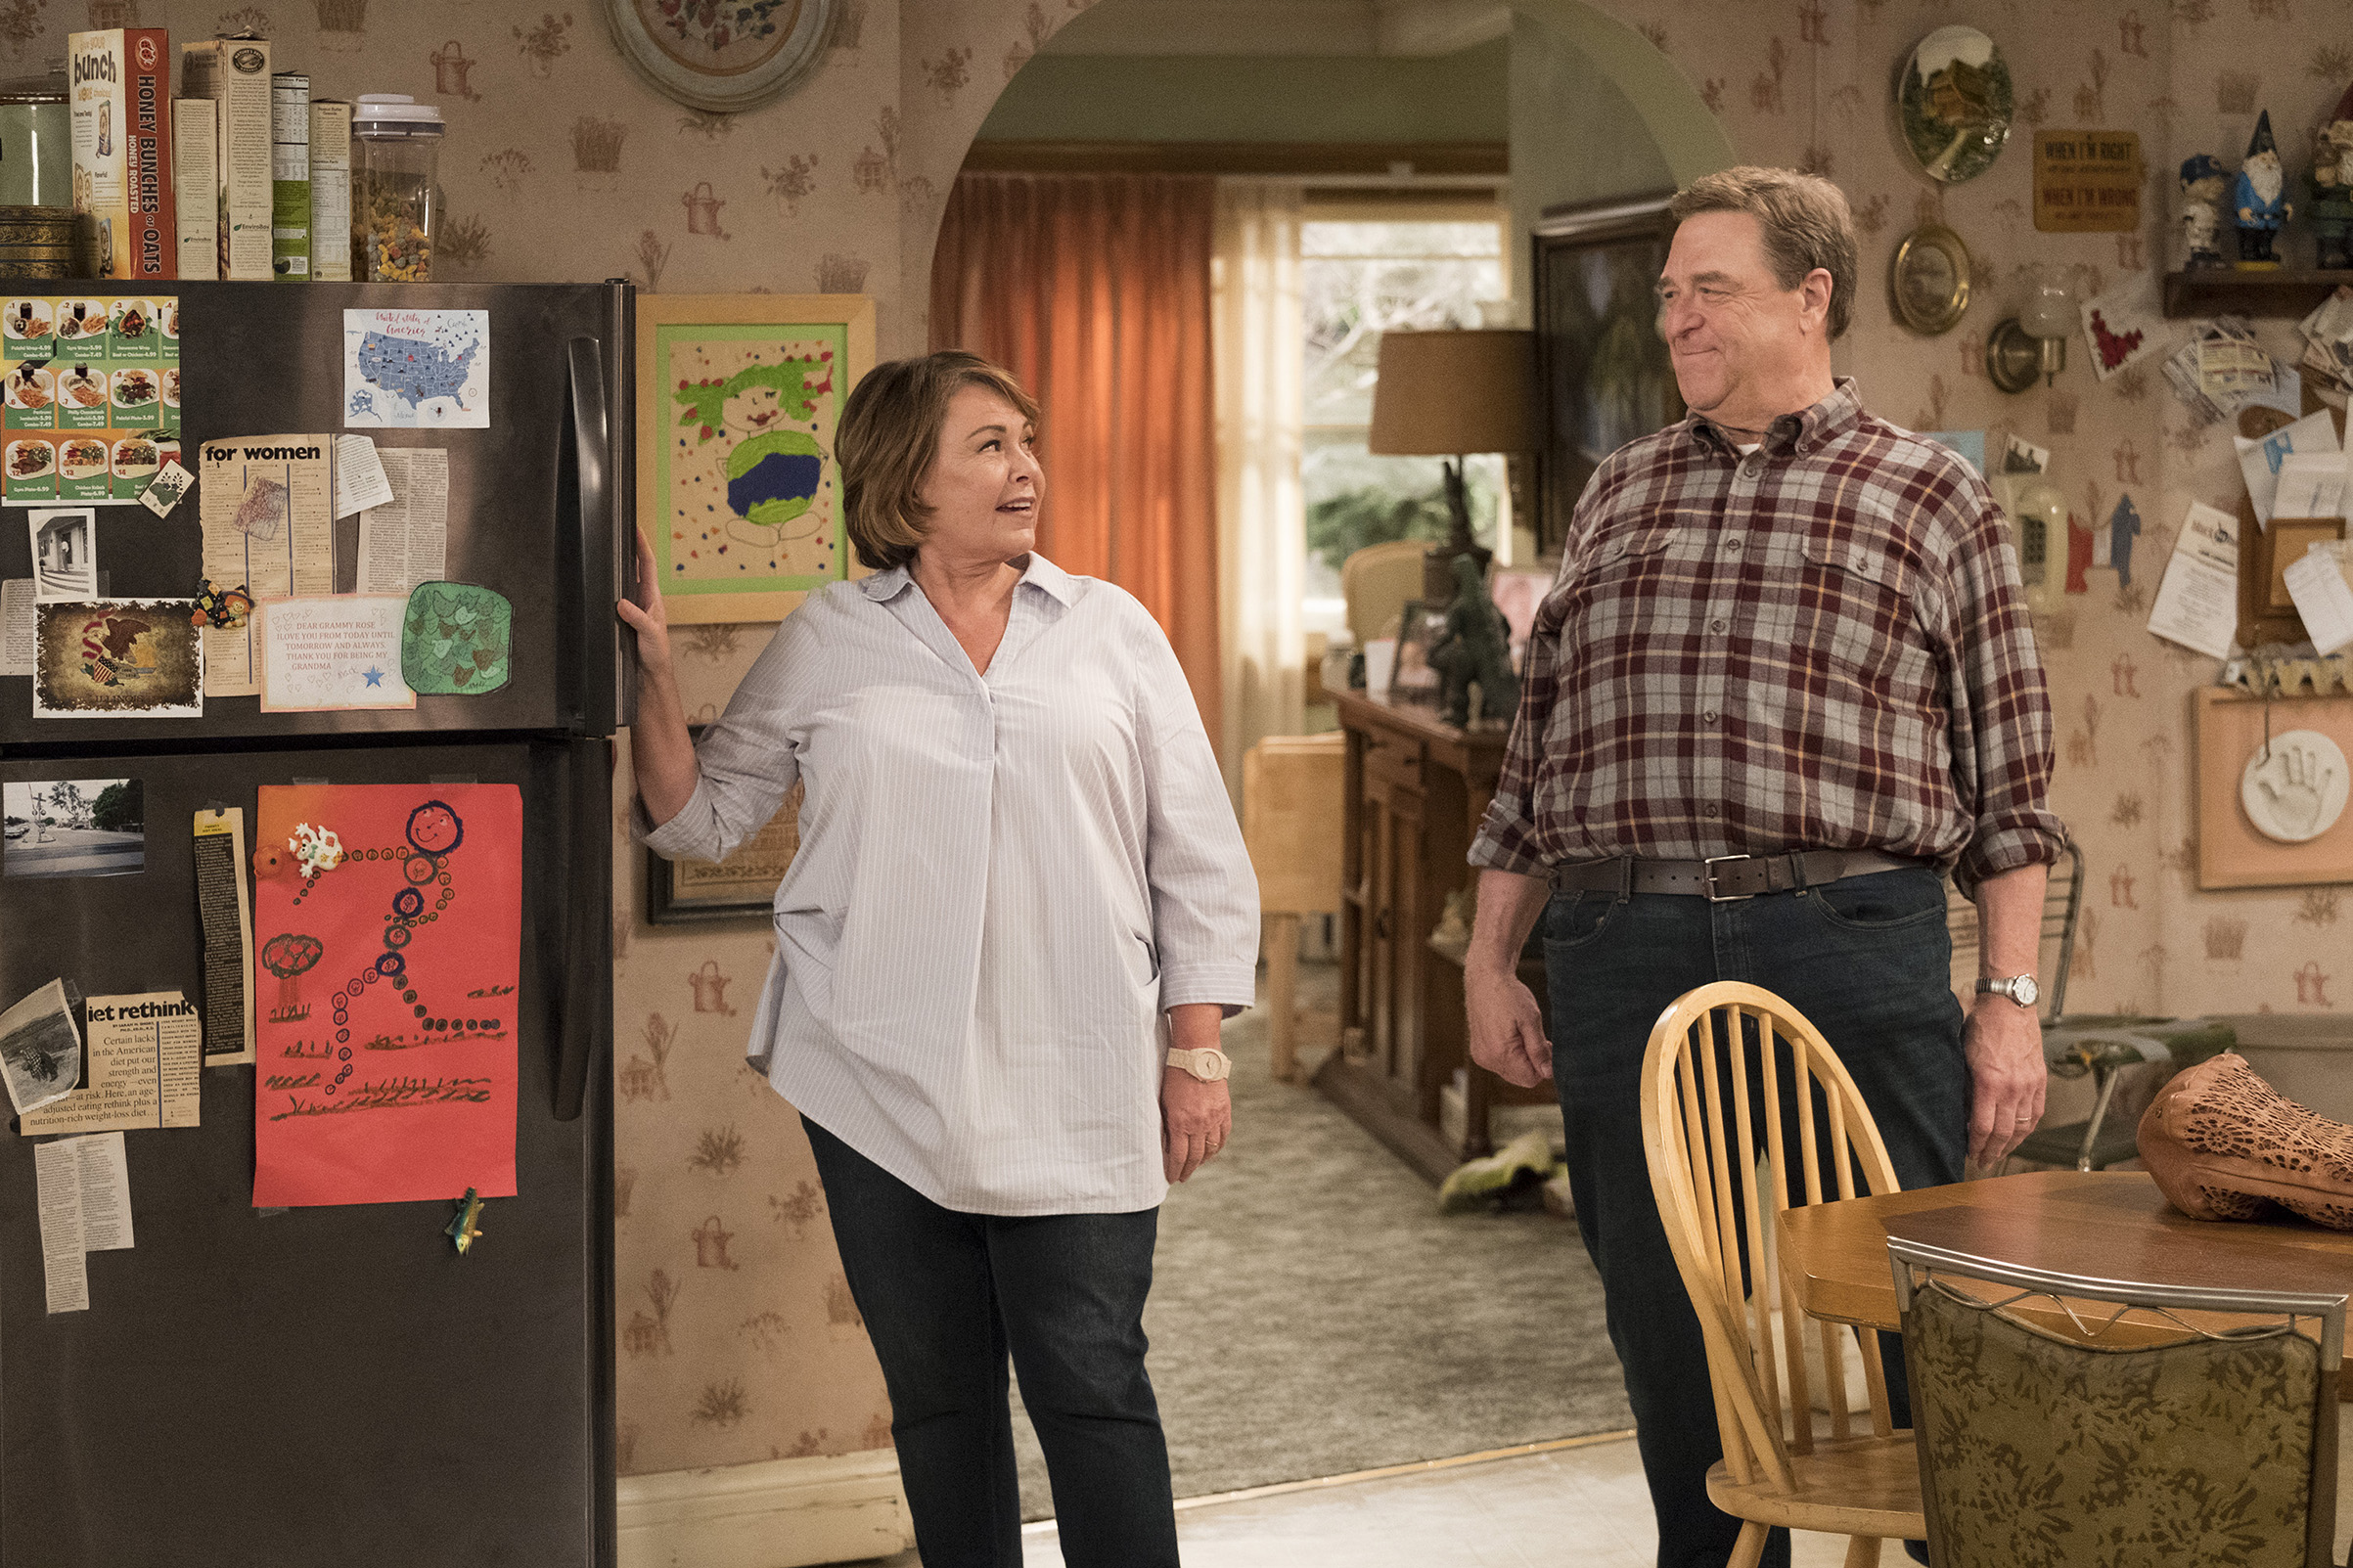 The revival of 'Roseanne' was emblematic of increasingly polarized entertainment in the Trump era